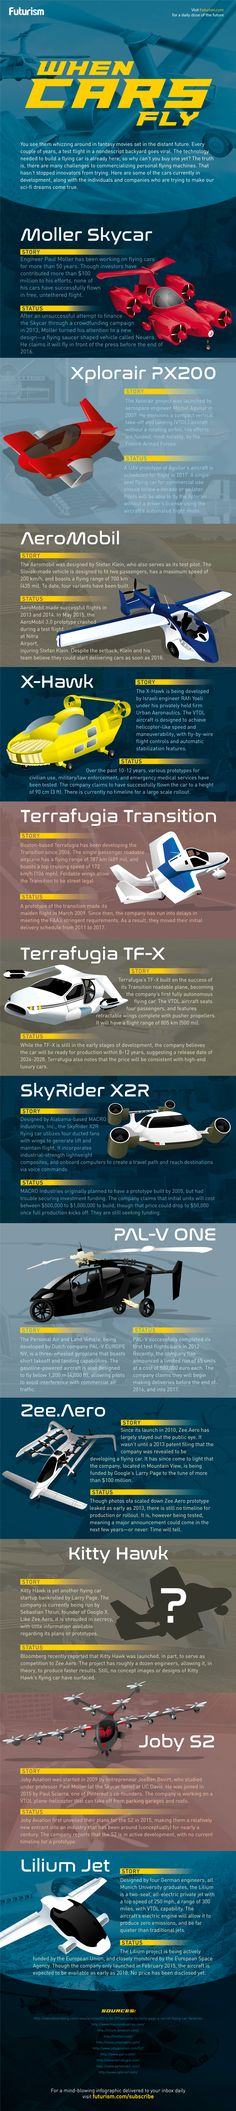 Flying Cars: A Future Buyer's Guide [Infographic] — While automobile manufacturers are busy chasing autonomy on the ground, a handful of innovators and dreamers are chasing a much bigger moonshot: the flying car. It's been a staple of science fiction for centuries. Now, it may finally be on the brink of reality. Here are the flying cars of tomorrow. — https://futurism.com/images/flying-cars-of-tomorrow-infographic/